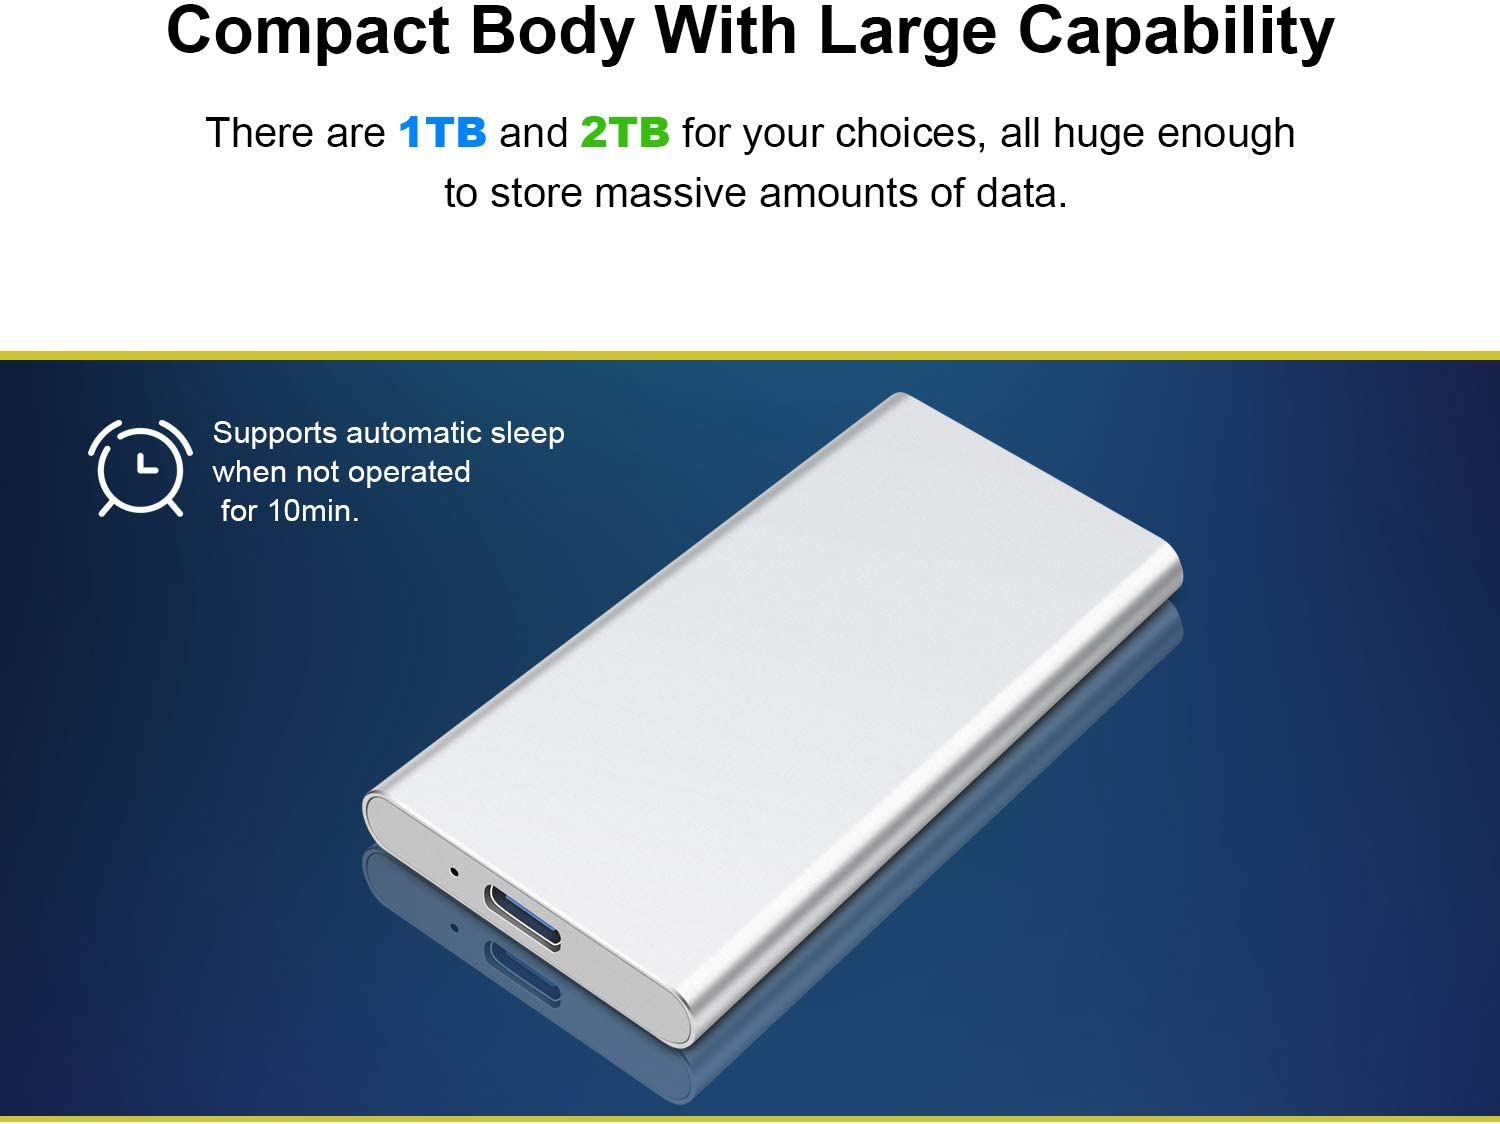 Portable Hard Drive Data Storage Portable HDD Compatible with PC External Hard Drive 1TB, Blue Laptop and Mac